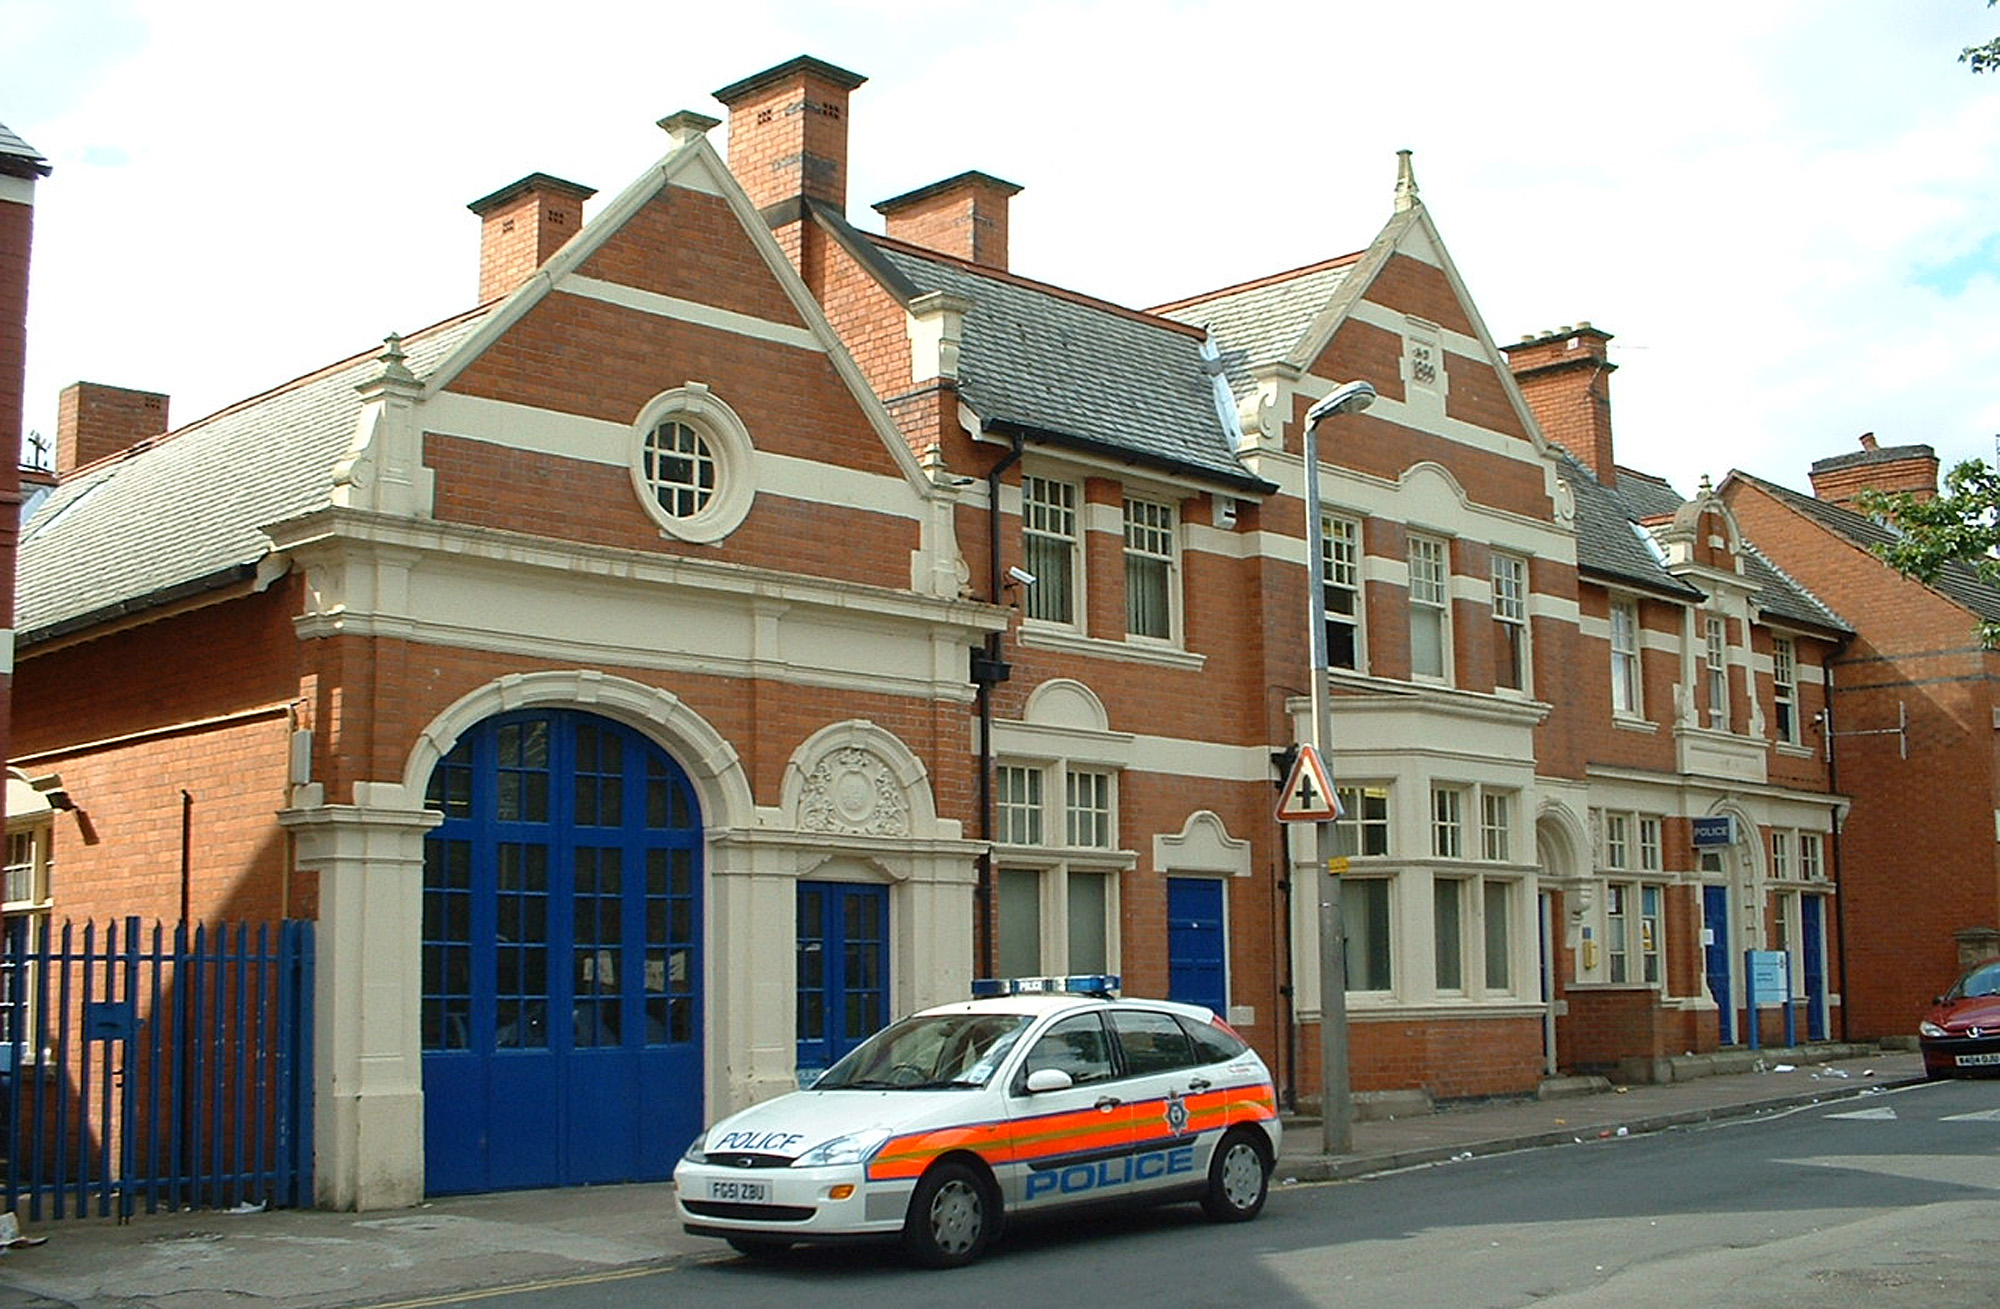 Asfordby Street Police Station